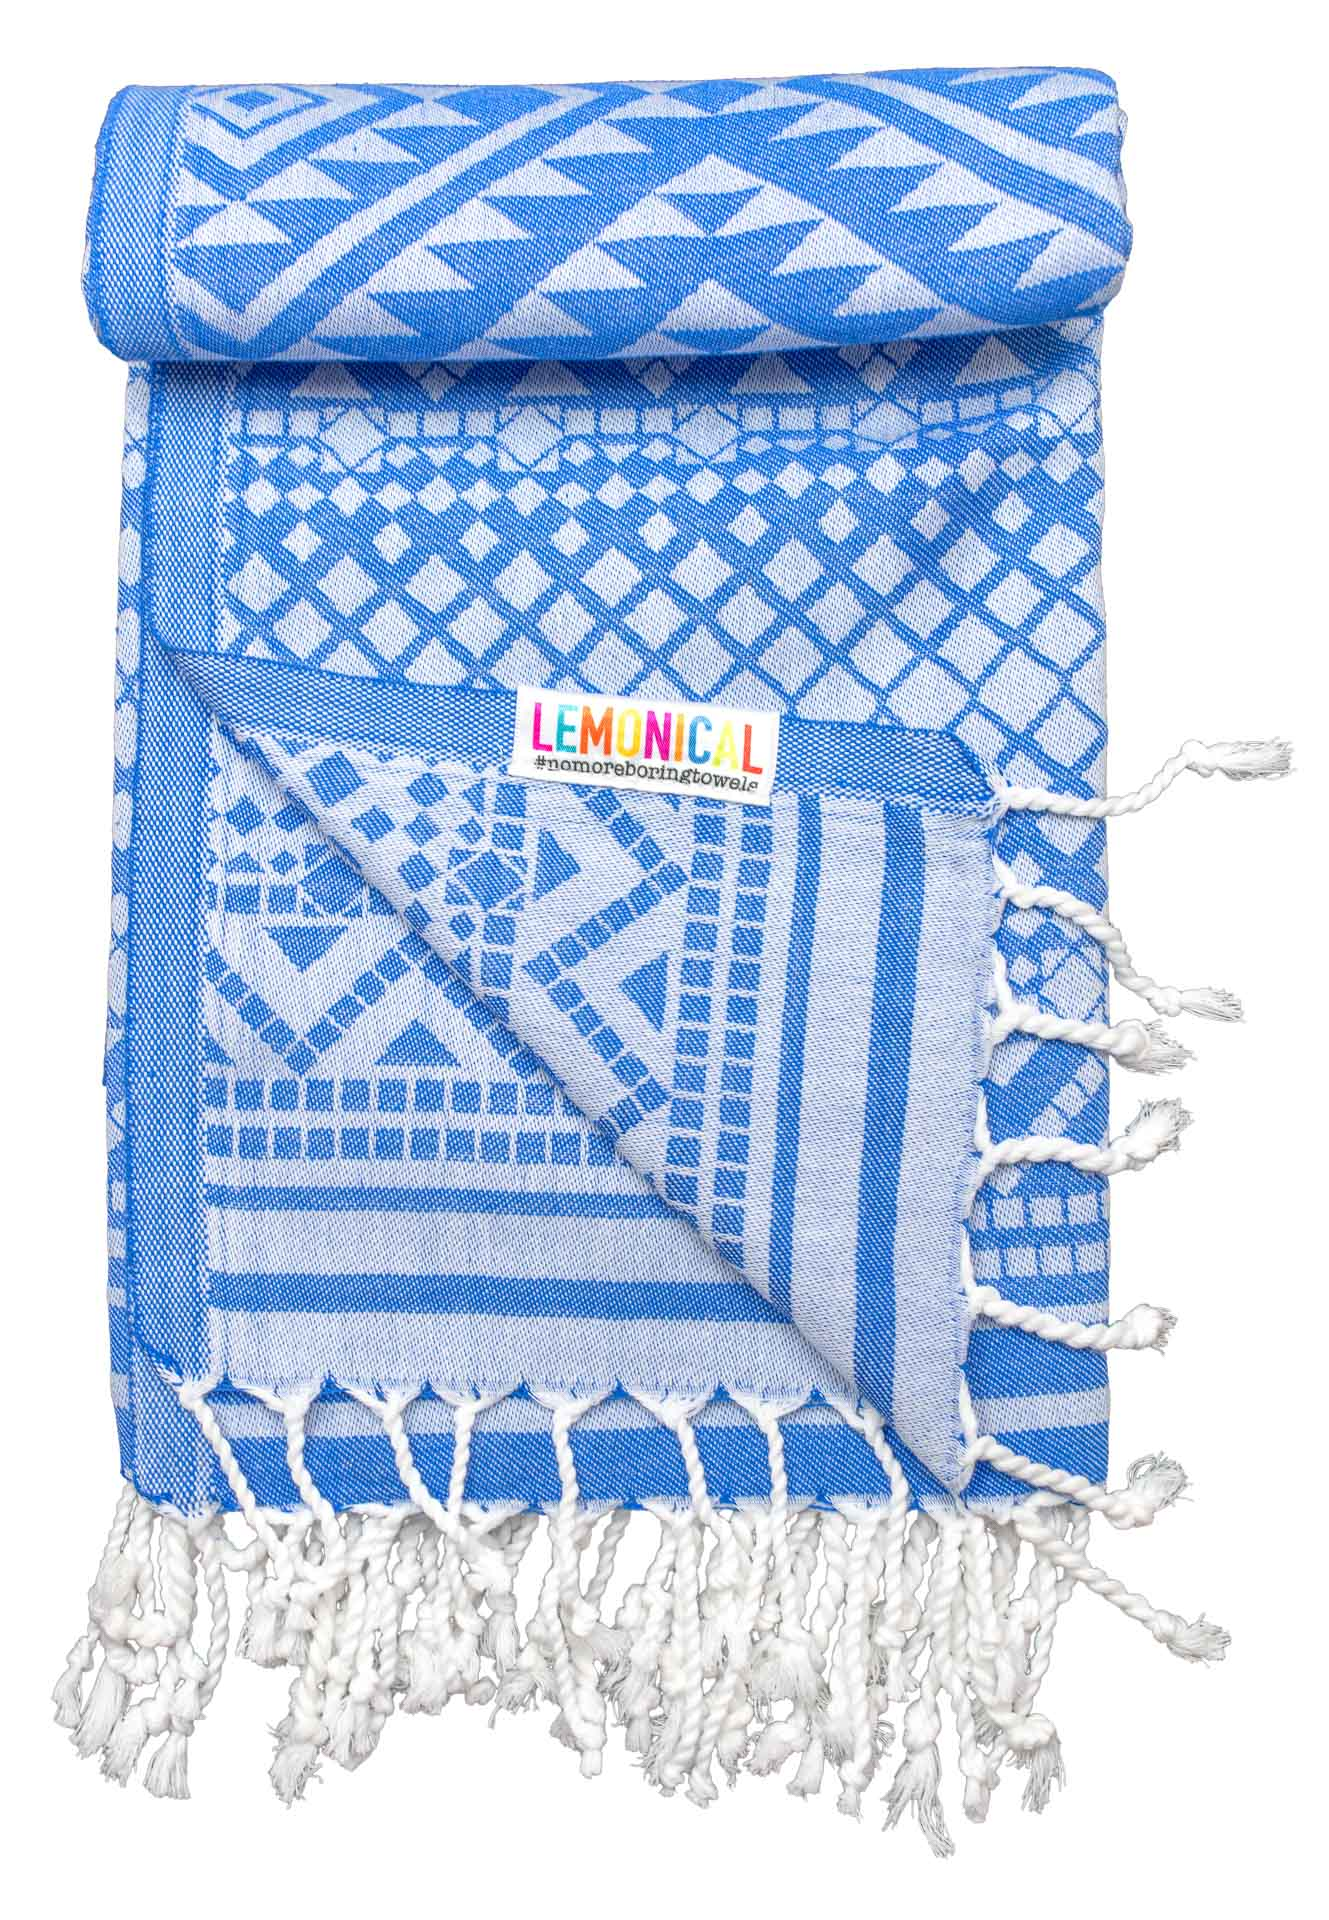 BLUE-ORIENT-Towel-Lemonical-4